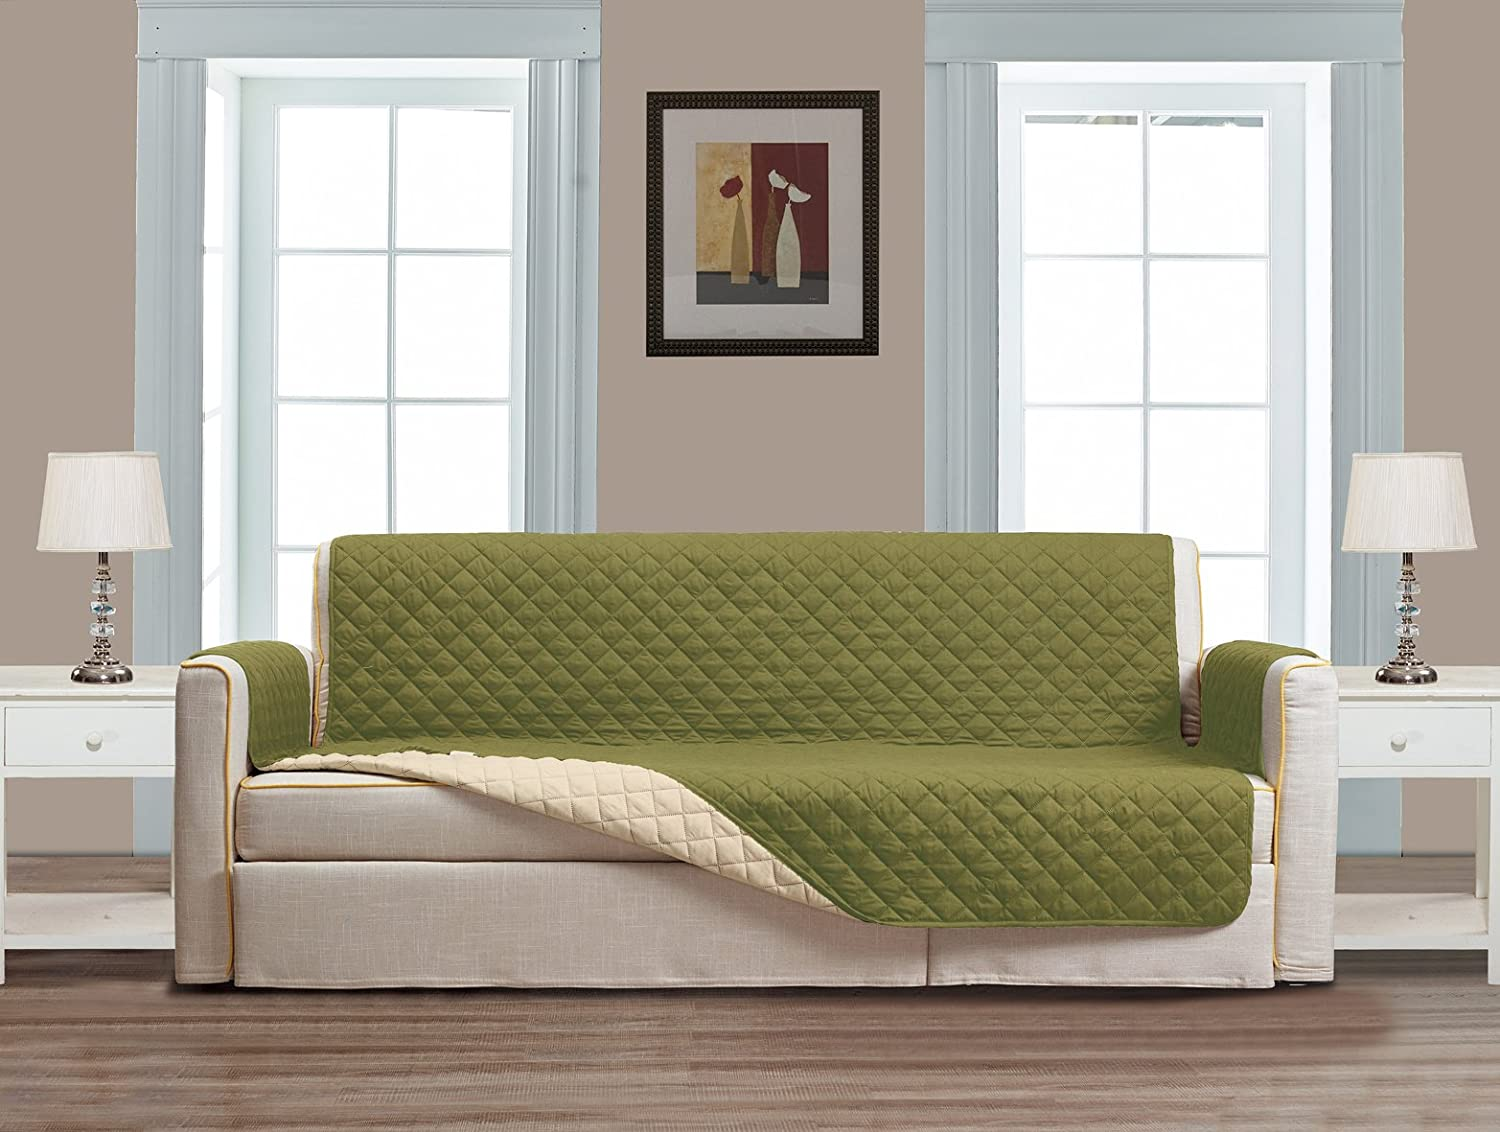 (Loveseat, Sage Green / Beige) - Superior Quality Reversible Loveseat Cover 230cm X 190cm -Furniture Protector For Pets, Kids, Dogs-Large Sofa, Standard Sofa, Loveseat, Recliner and Chair (Loveseat-Sage Green / Beige)   B071KLPD2V